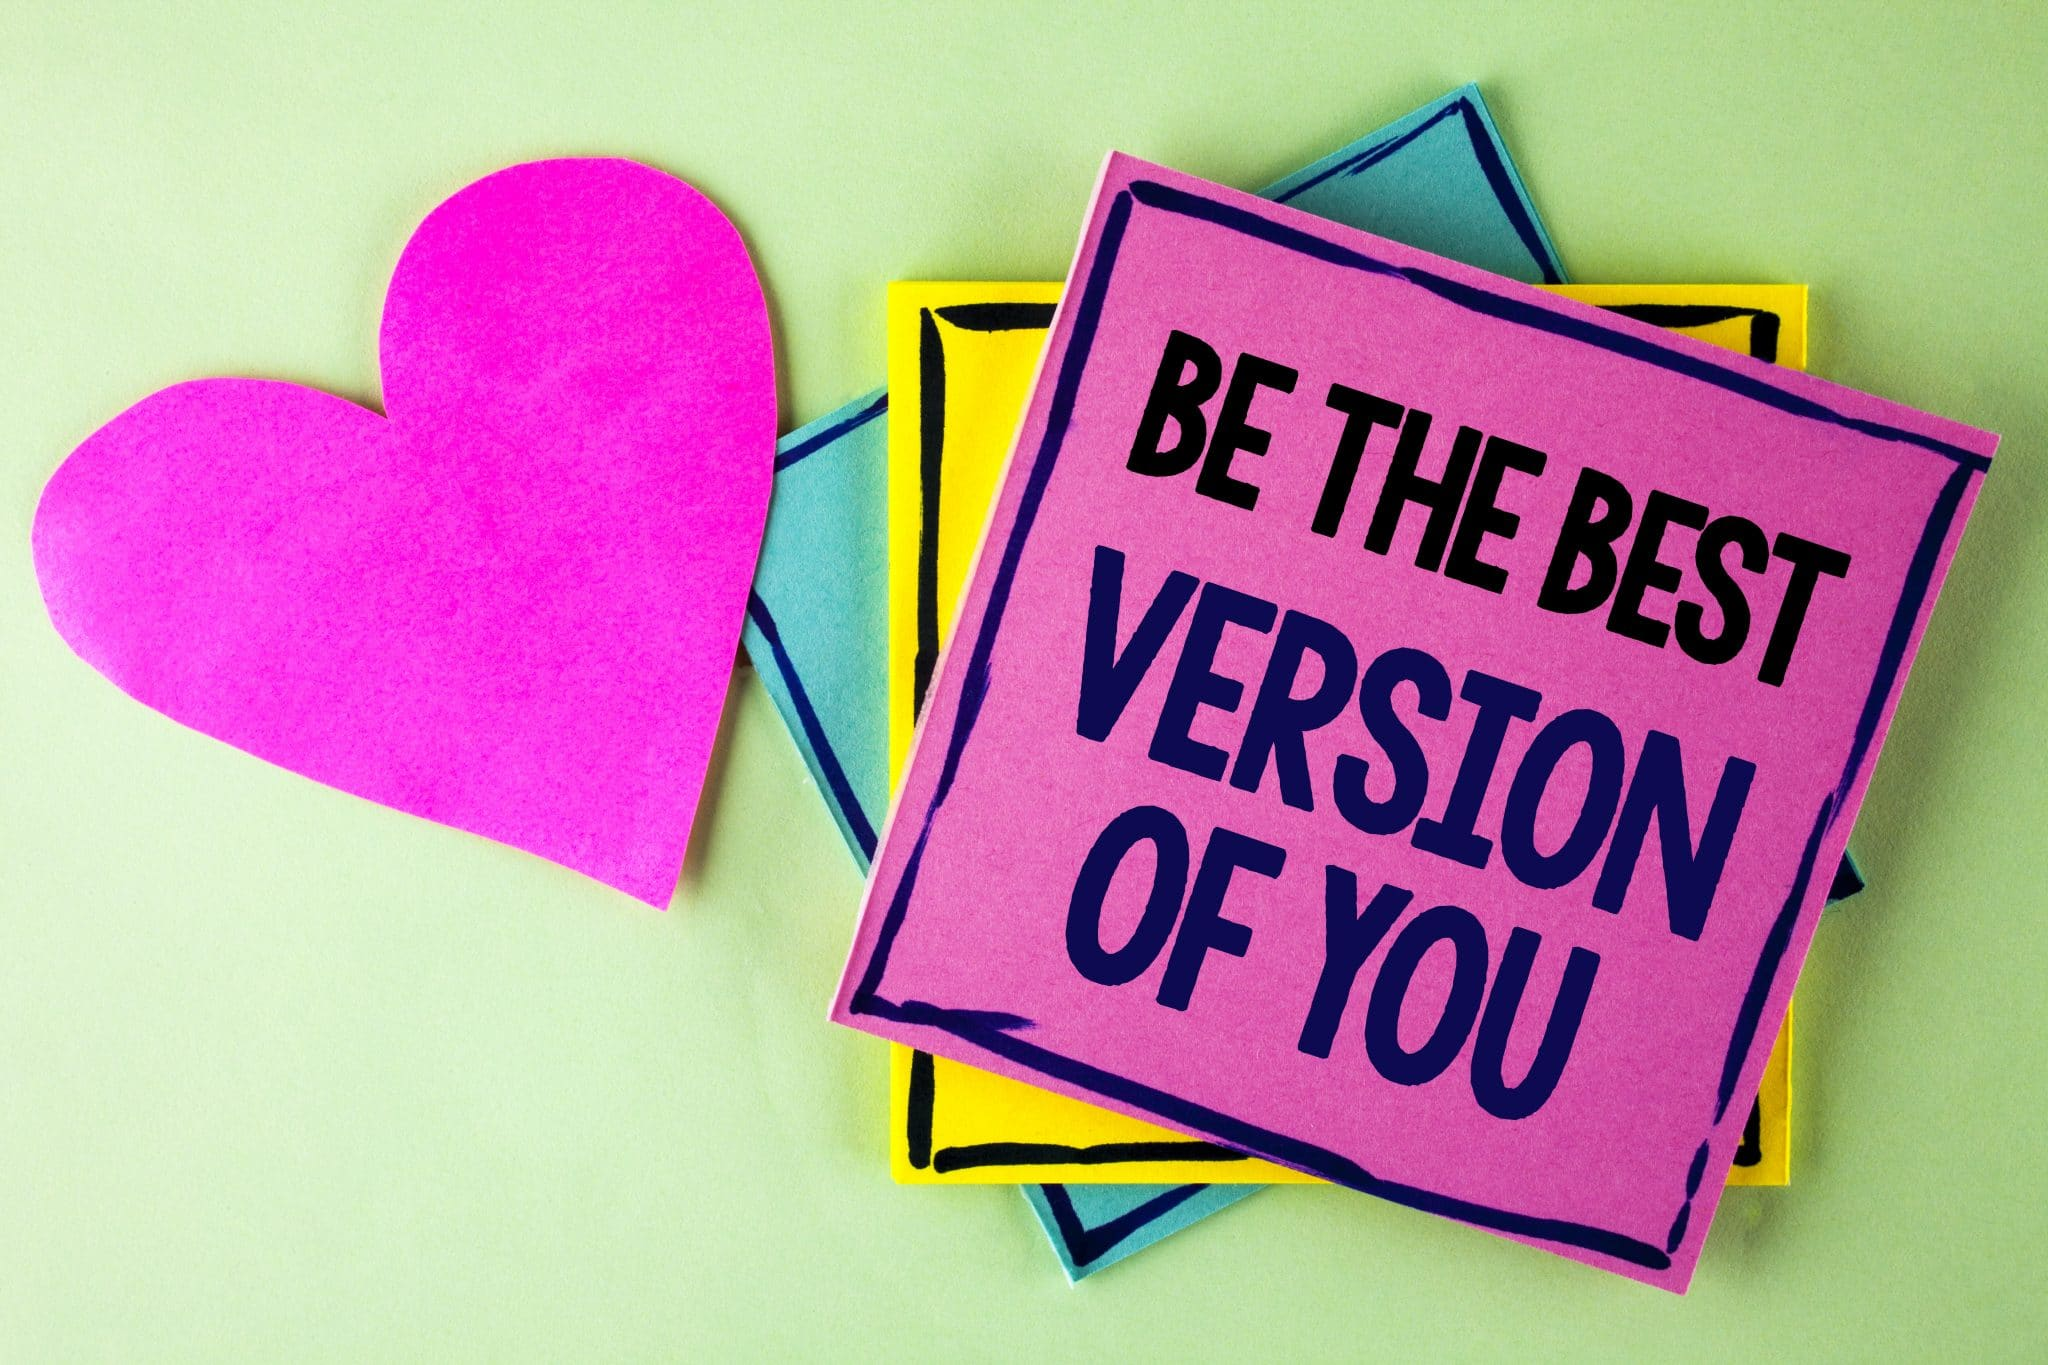 pink heart and blue, yellow, and pink notes stacked, top one says Be the best version of you.  Green background.